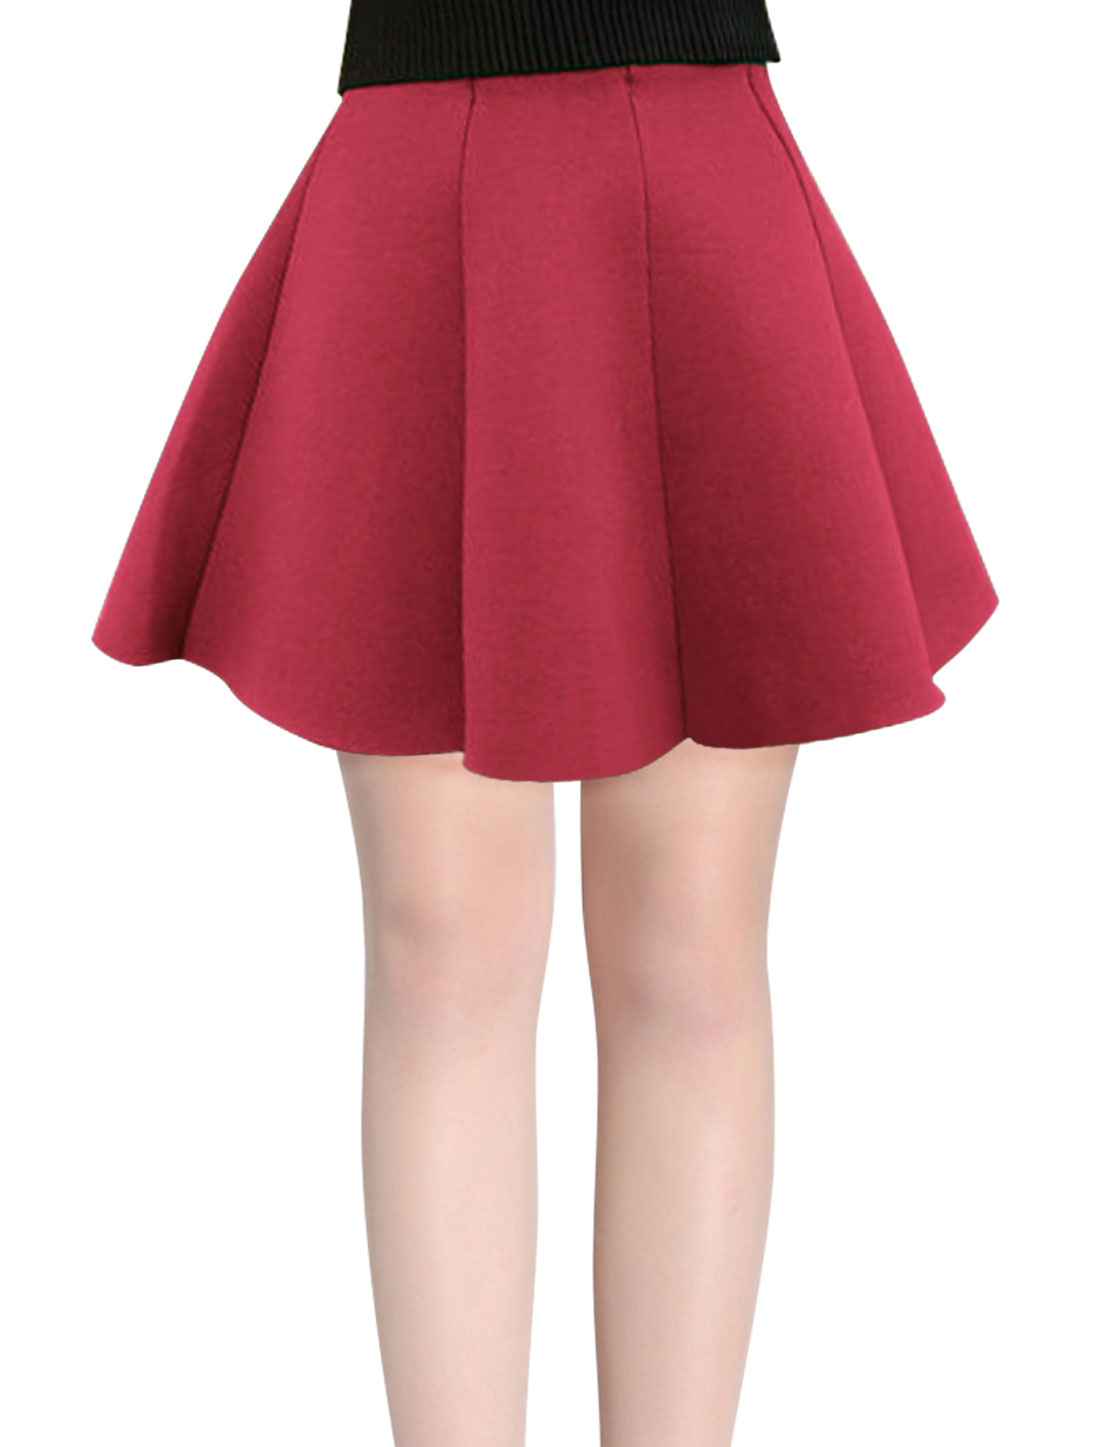 Stylish Round Hem Elastic Waist Burgundy Full Skirt for Lady XS